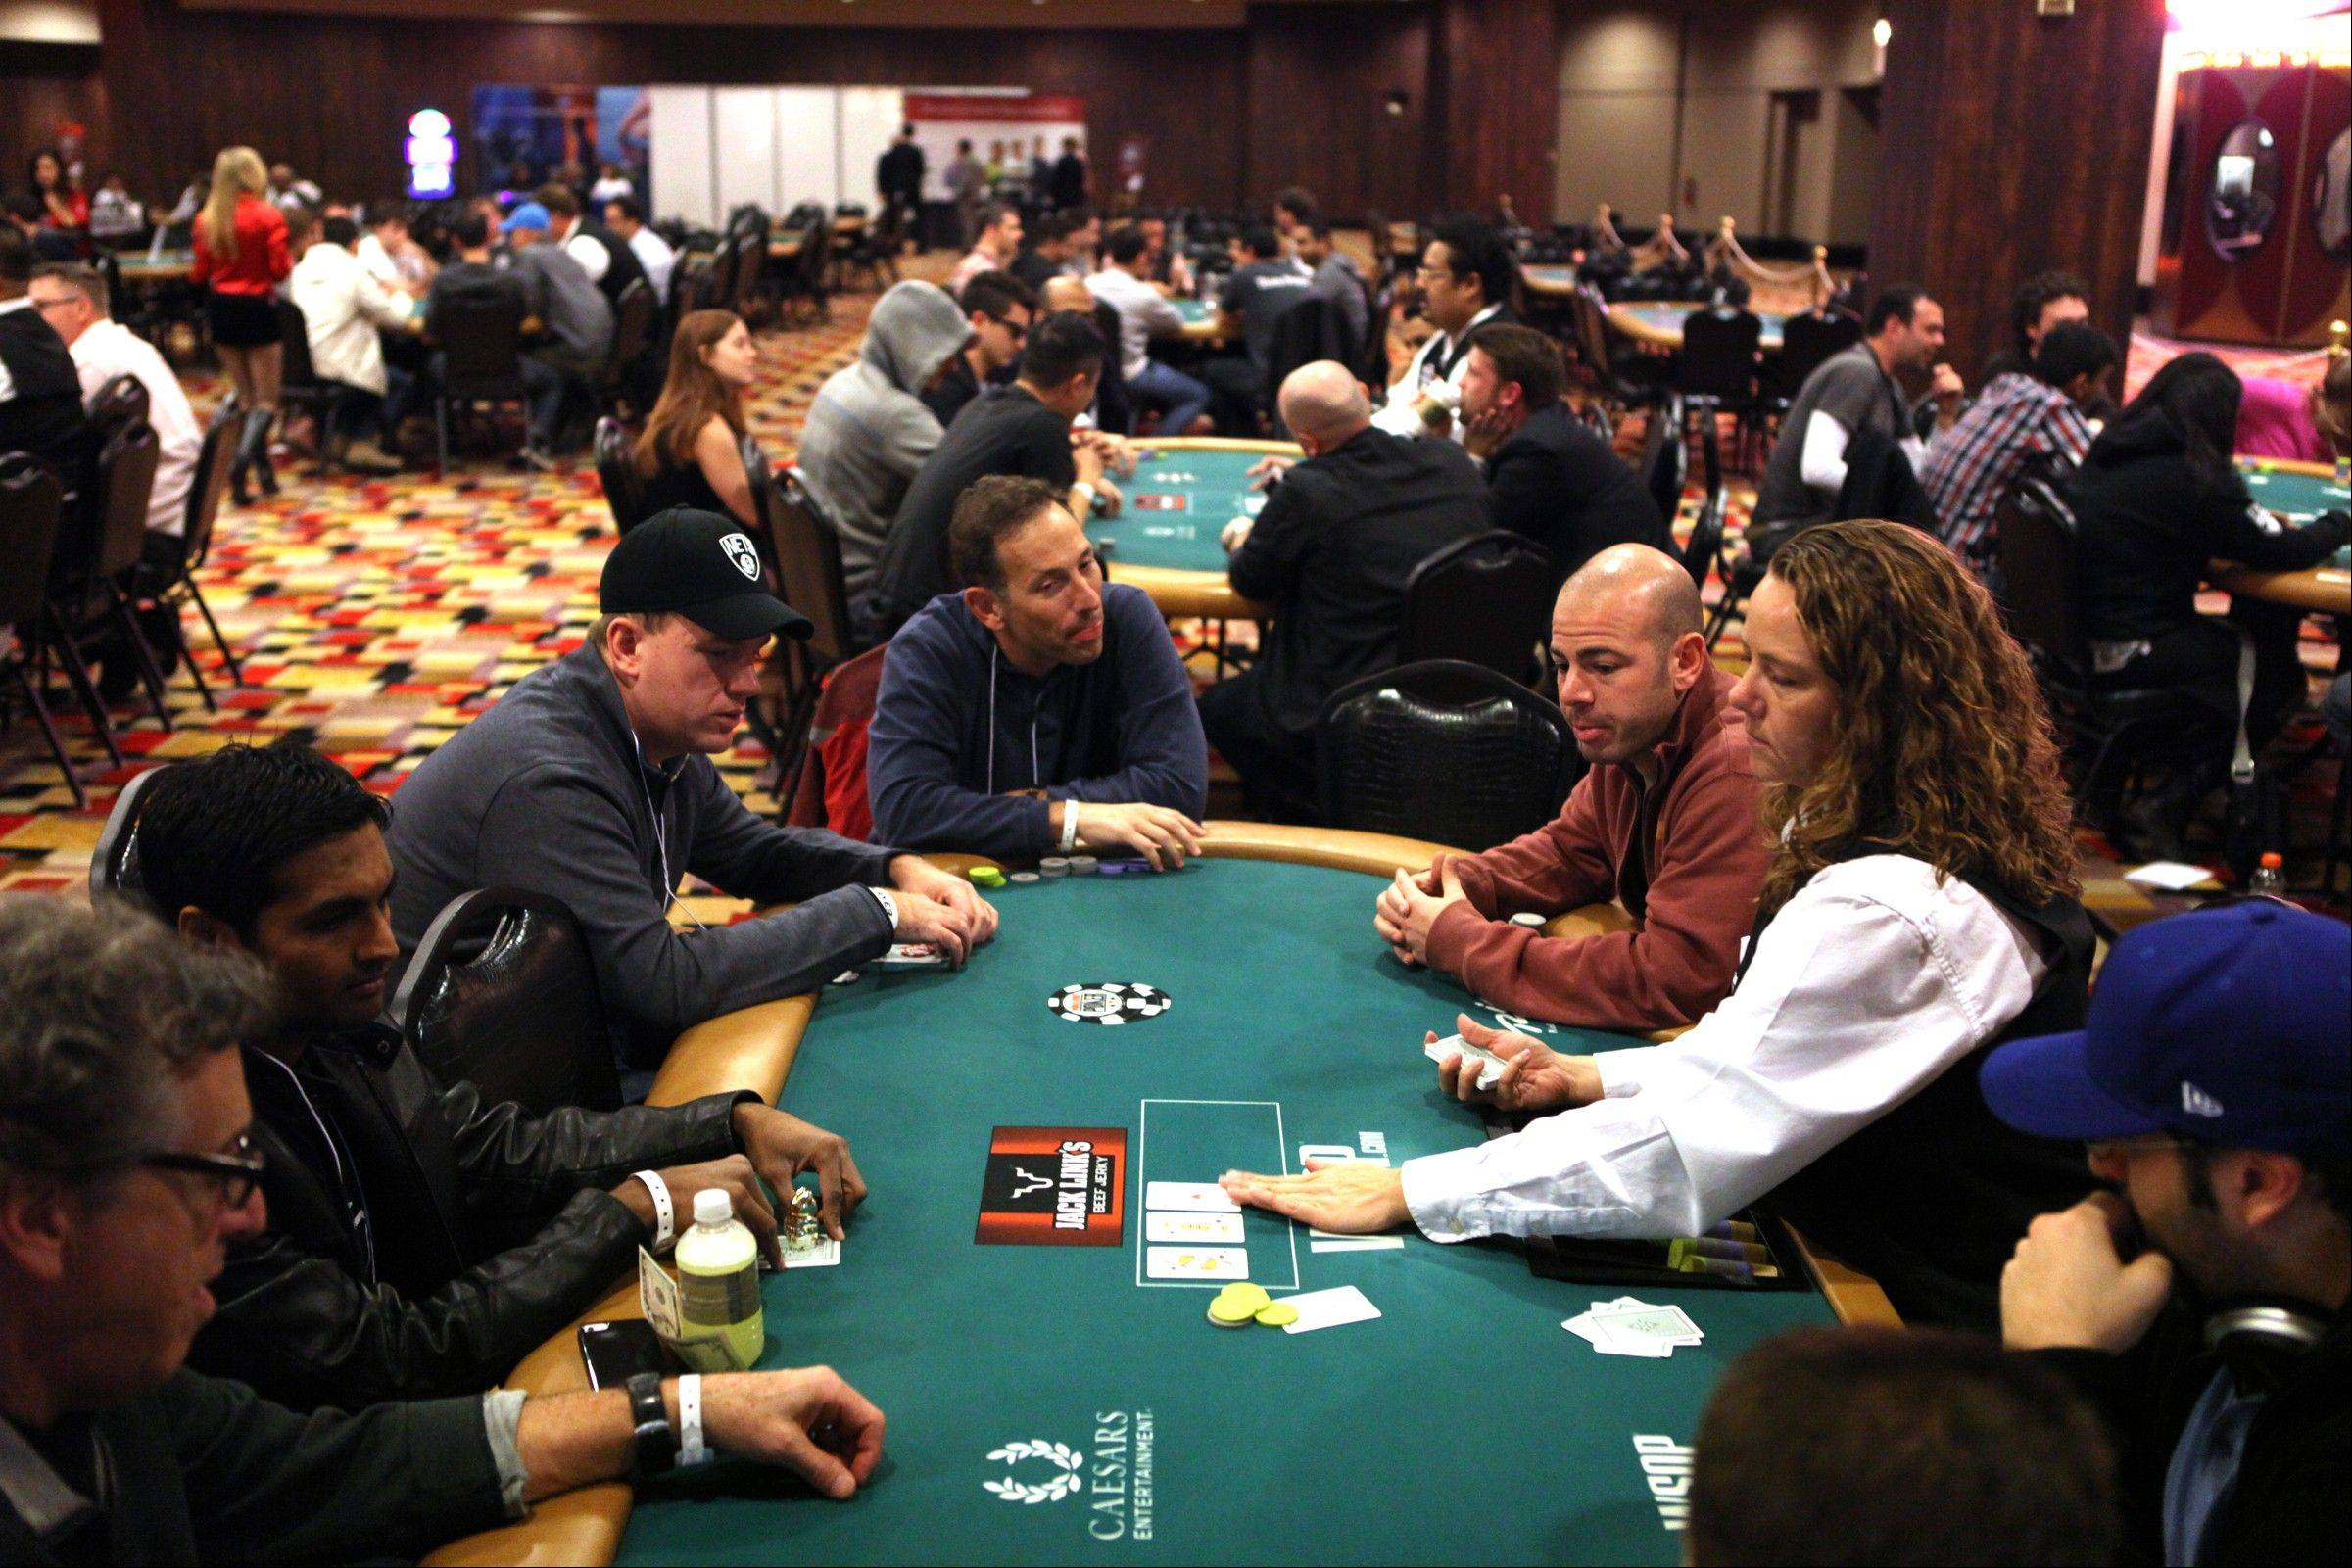 Recruits play poker during the MBA Poker Championship and Recruitment Weekend at Planet Hollywood in Las Vegas.